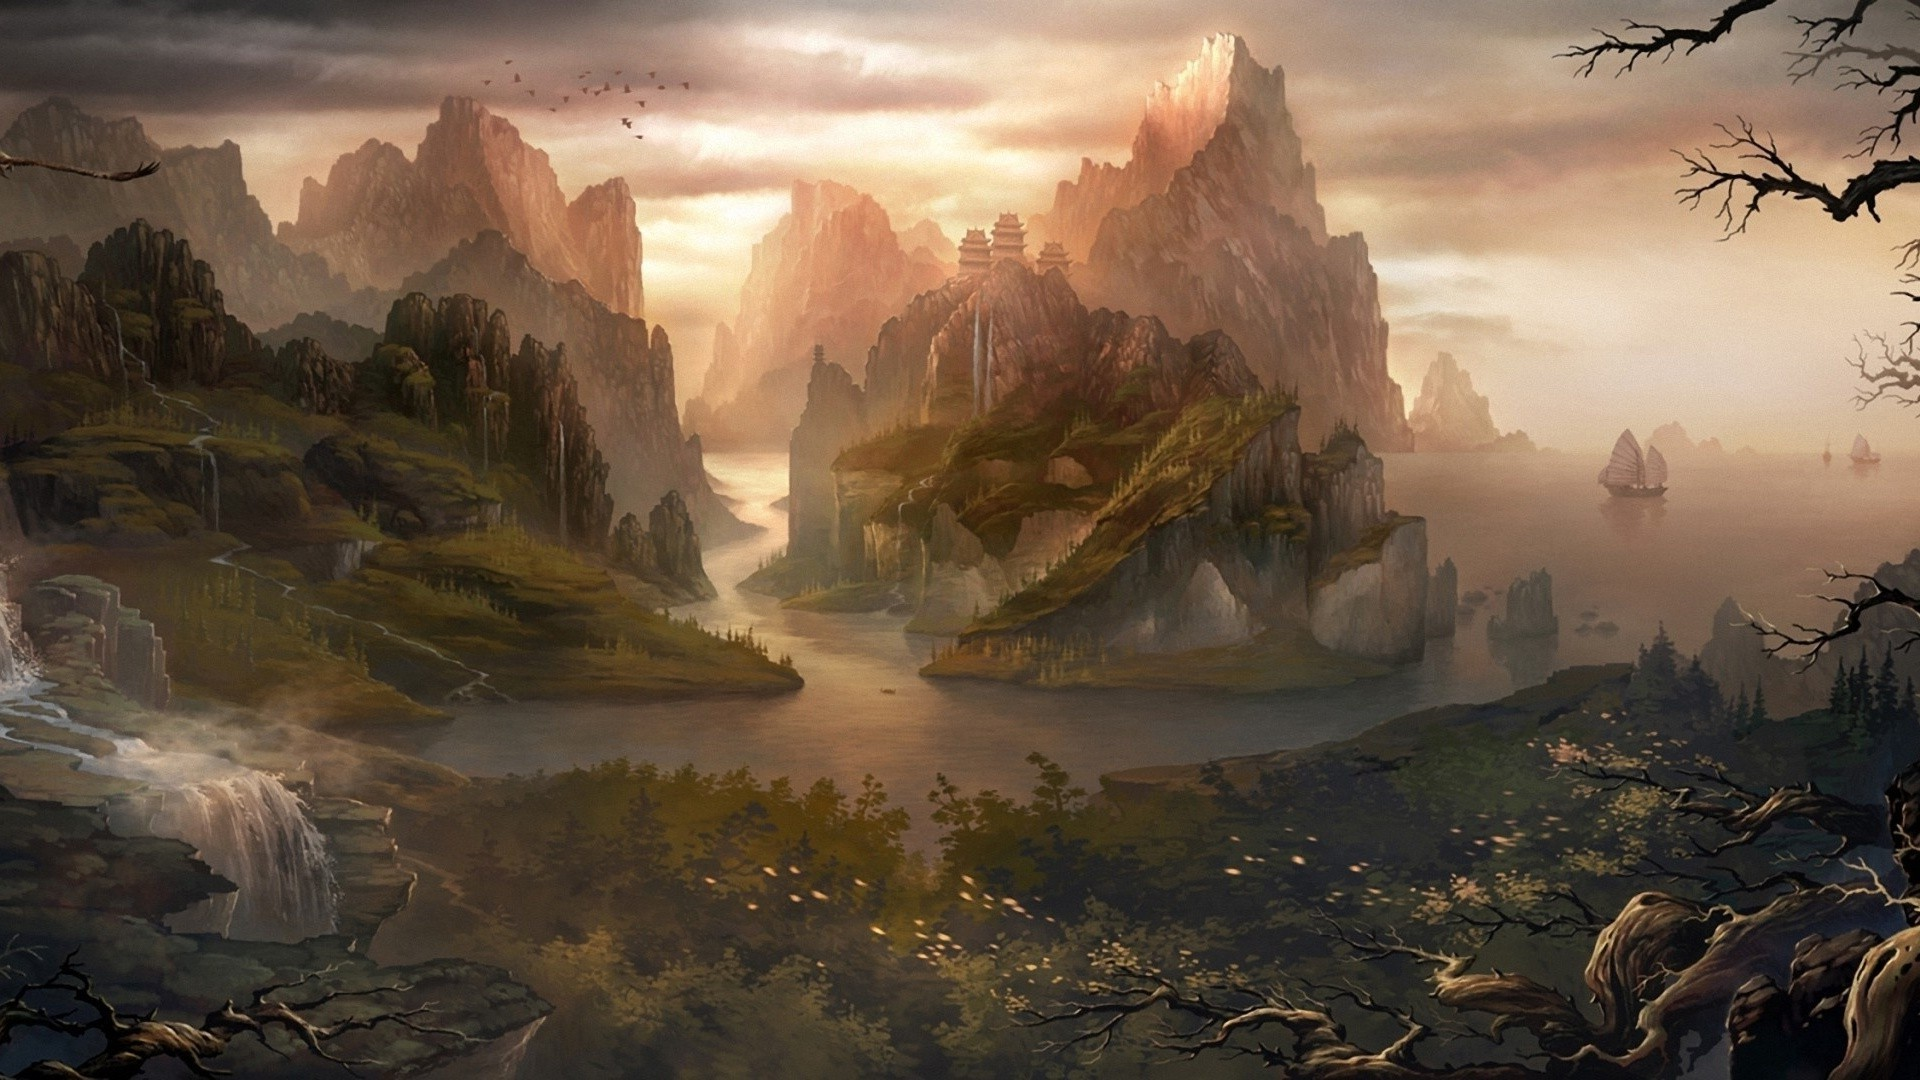 75+ fantasy backgrounds ·① download free full hd backgrounds for